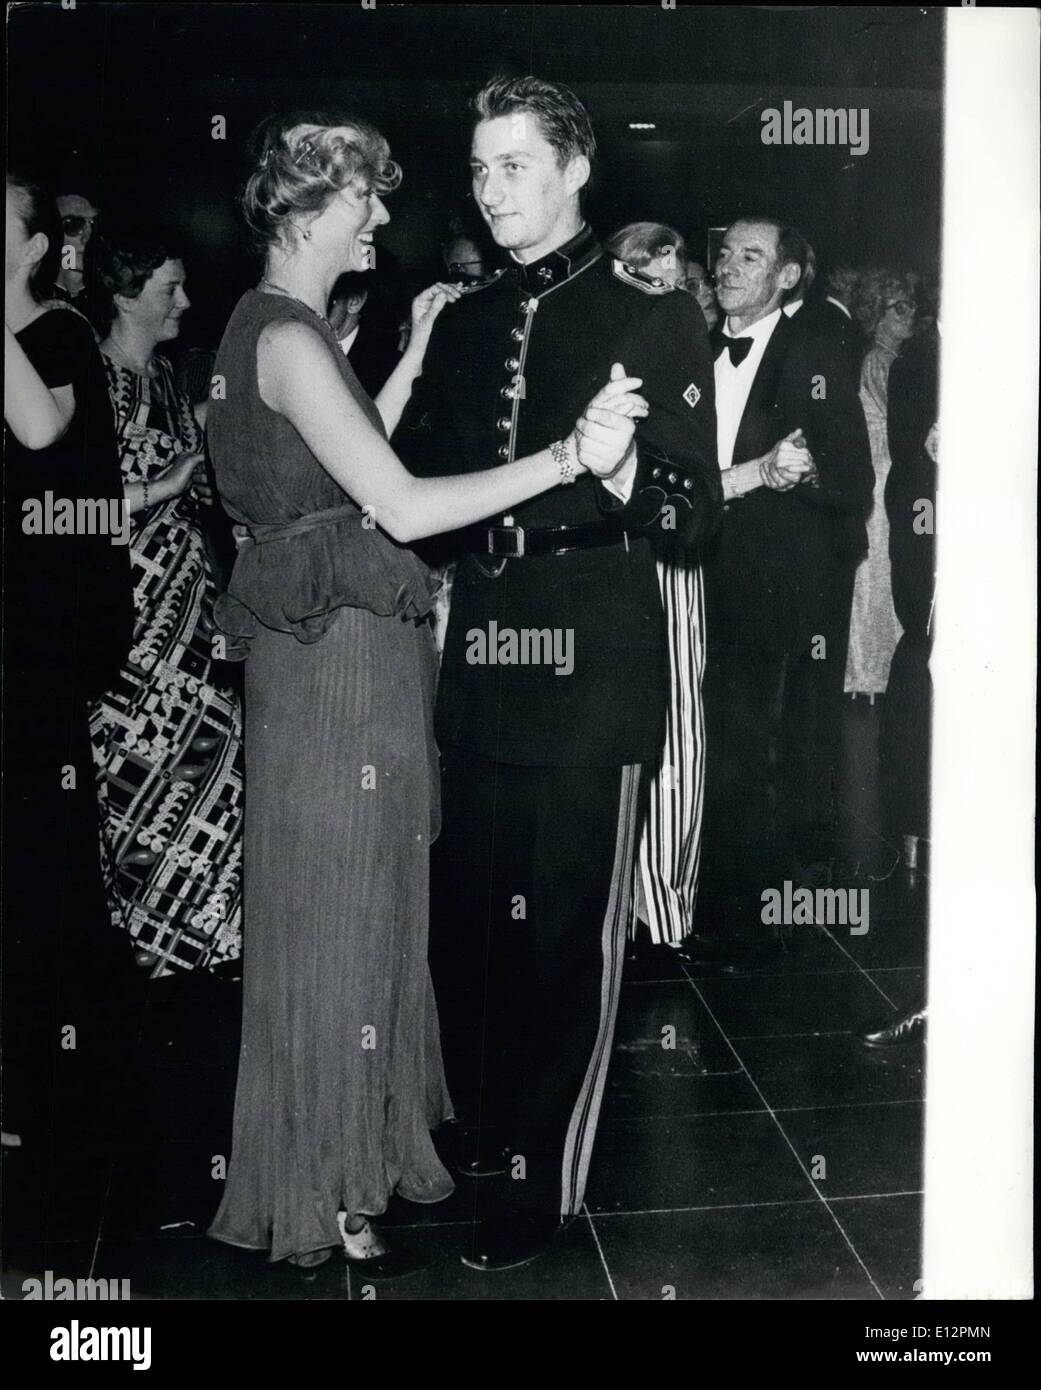 Feb. 24, 2012 - His First Ball Accompanied by his parents, Albert and Paola, Prince Phillipe of Belgium atended his first ball at the SaloNon English Contentdu Haysel, at the Royal Military School in Brussels, where he is training to be an officer. Photo Shows: Prince Phillipe during the dance, with one of his mant partners. - Stock Image